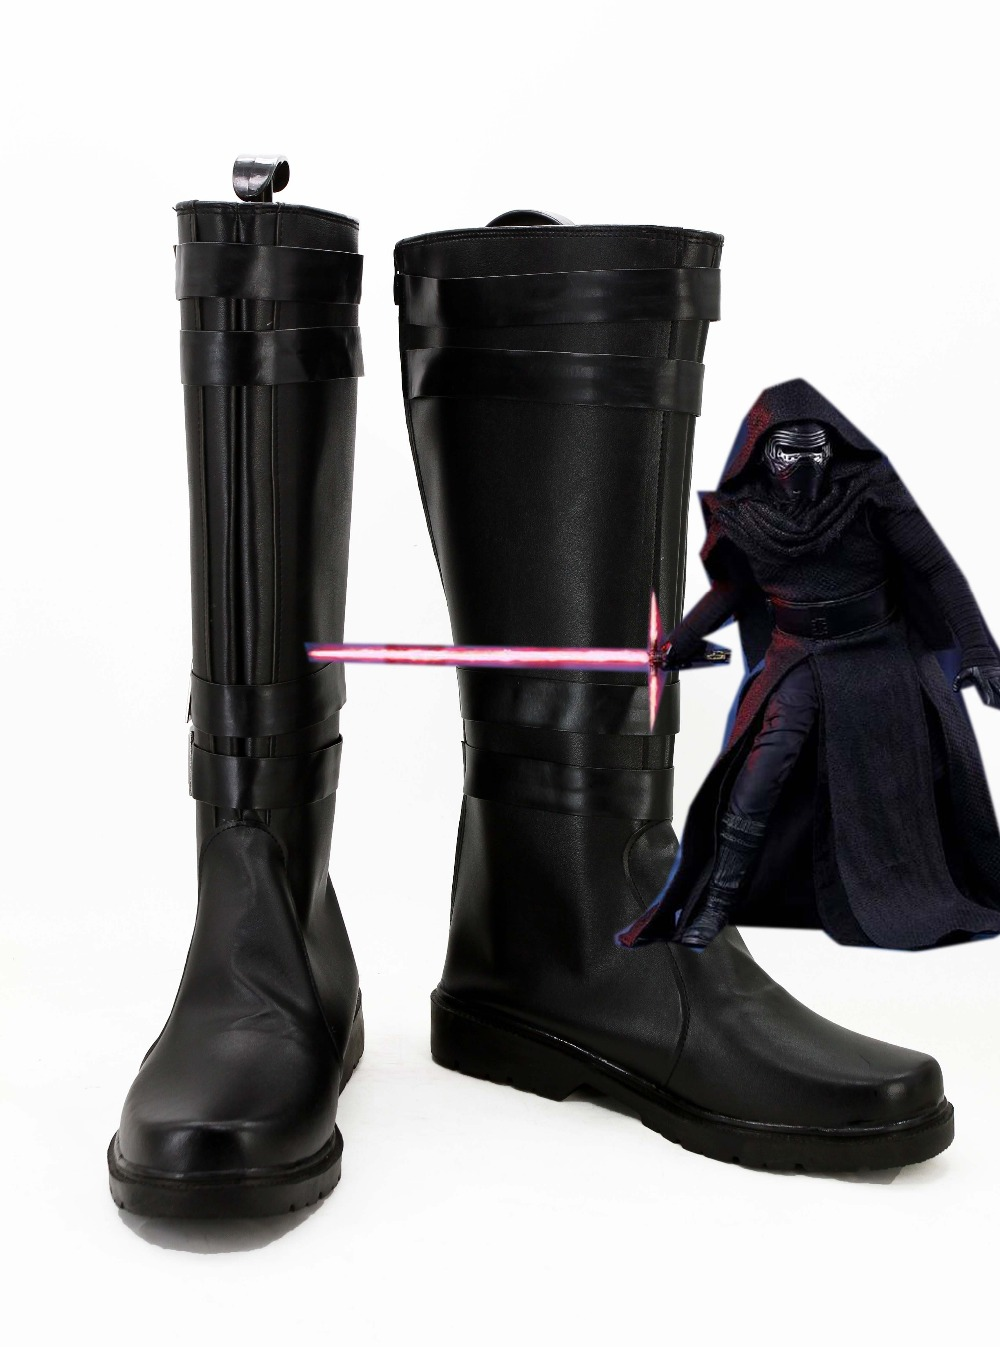 Star Wars 7: Force Awakens Kylo Ren Boots Skor Cosplay Kostym Custom Made